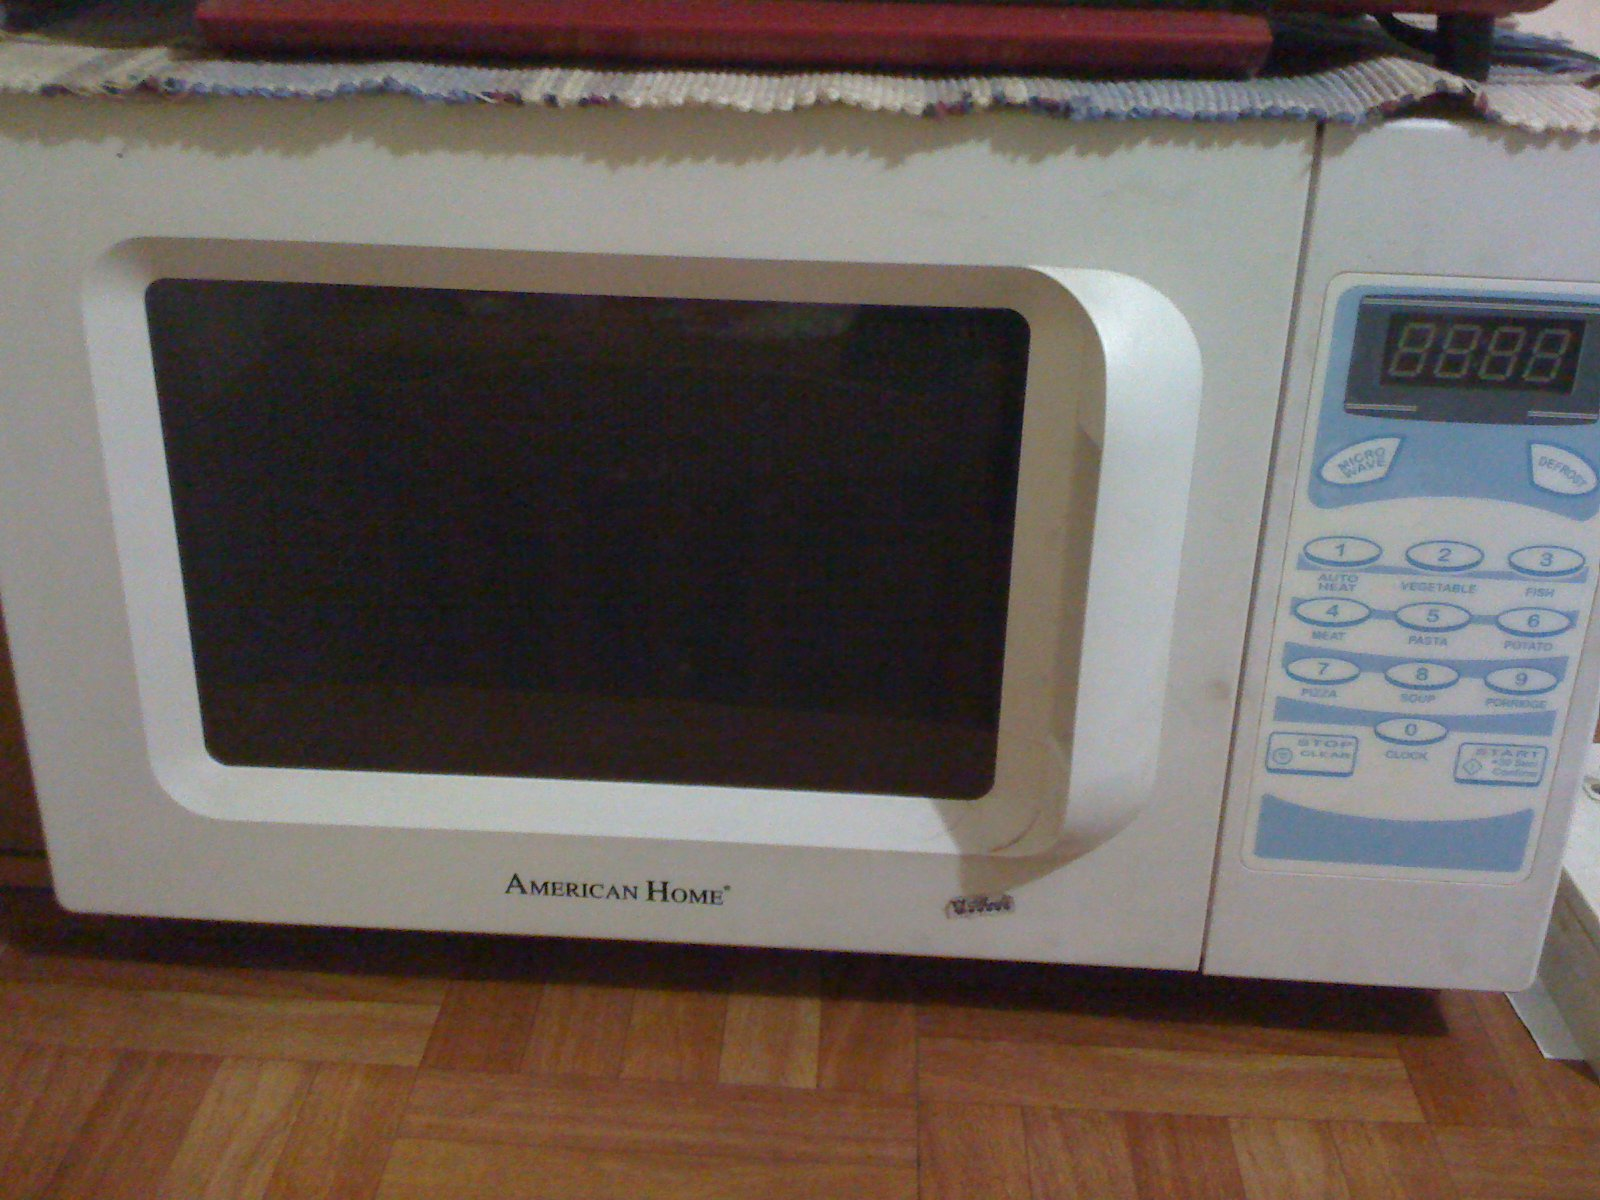 FOR SALE: Microwave oven fully digital